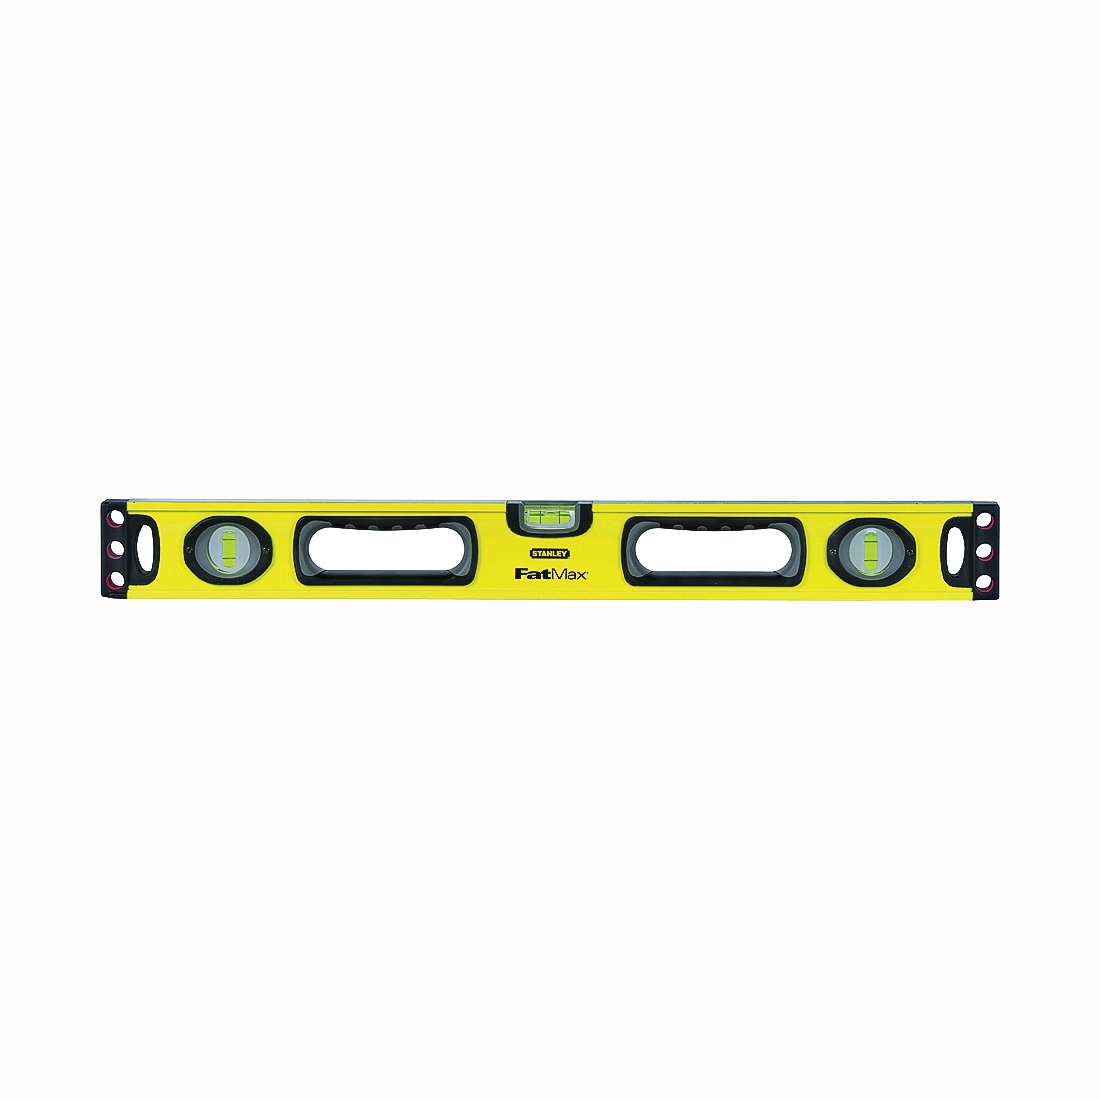 Picture of STANLEY 43-524 Box Beam Level, 24 in L, 3 -Vial, 2 -Hang Hole, Non-Magnetic, Aluminum, Yellow